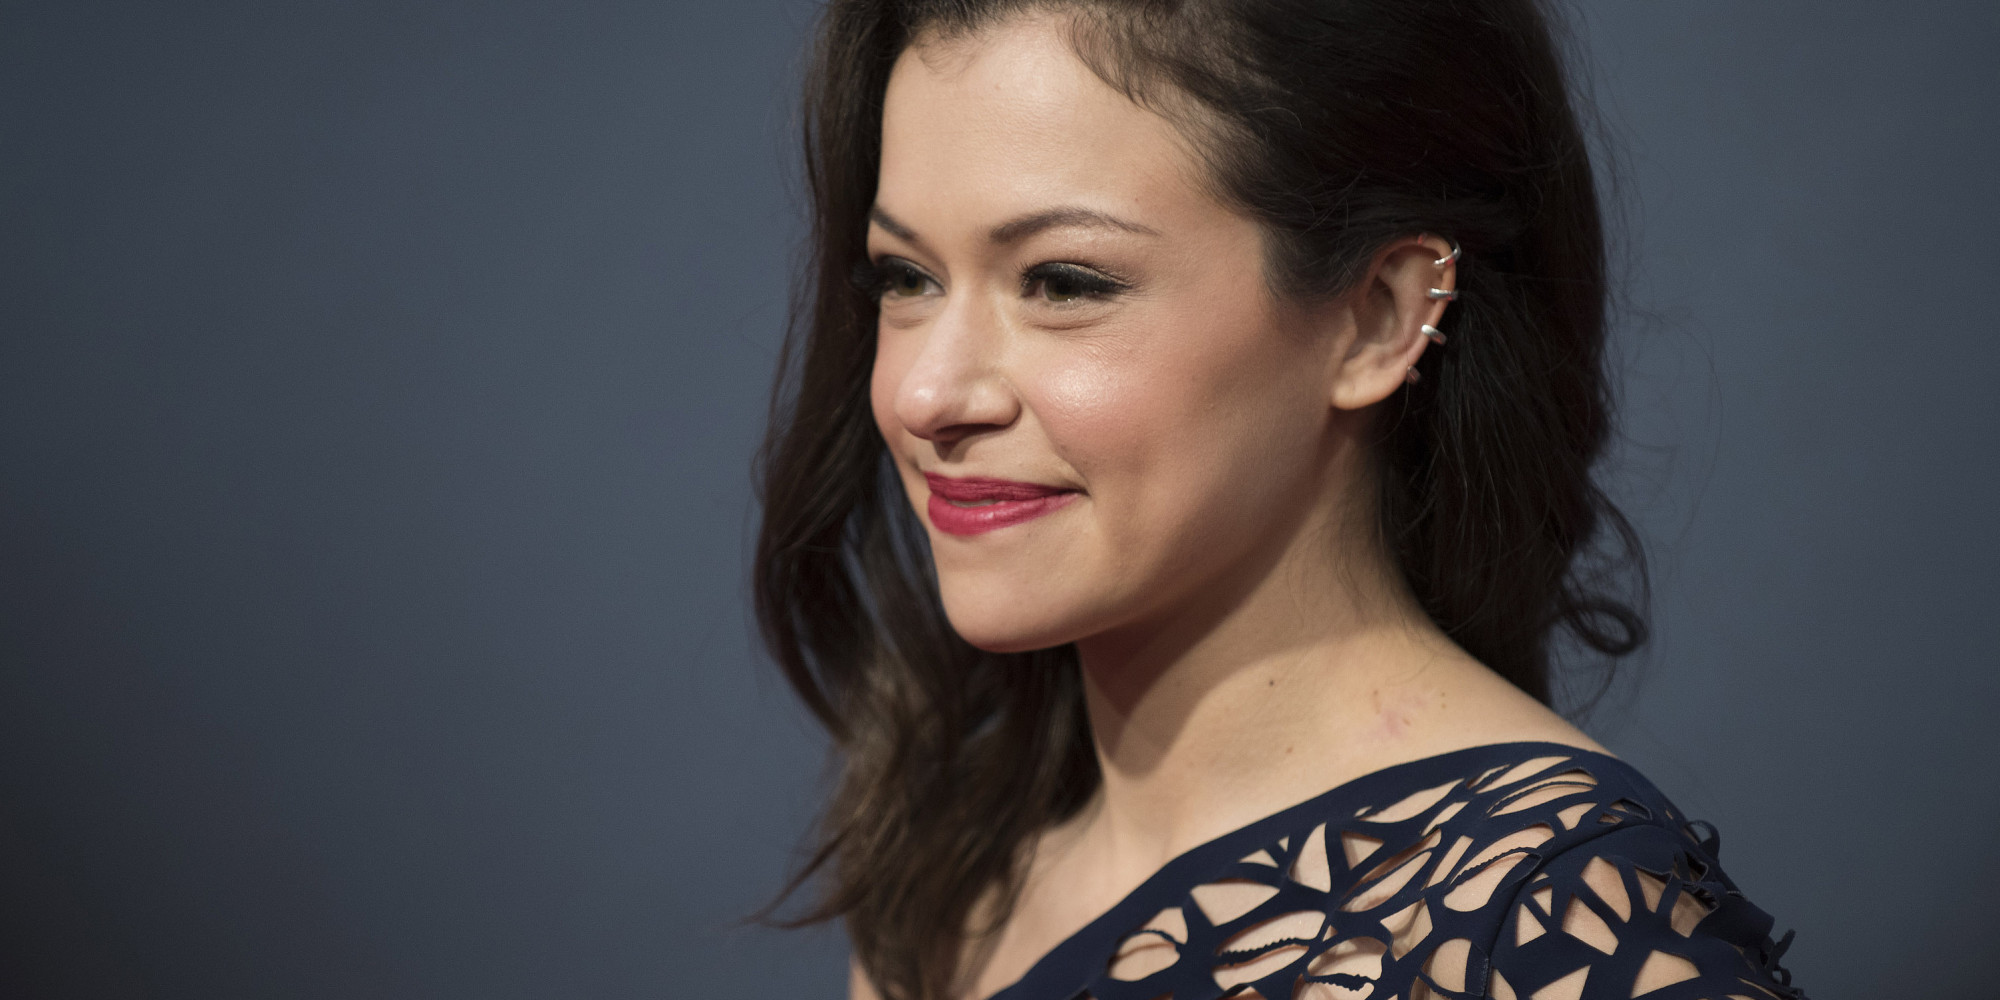 tatiana maslany relationshipstatiana maslany gif, tatiana maslany gif hunt, tatiana maslany interview, tatiana maslany and dylan bruce, tatiana maslany gif tumblr, tatiana maslany photoshoot, tatiana maslany evelyne brochu interview, tatiana maslany bojack horseman, tatiana maslany filmography, tatiana maslany ukrainian, tatiana maslany films, tatiana maslany relationships, tatiana maslany boyfriend, tatiana maslany vk, tatiana maslany violet and daisy, tatiana maslany gallery, tatiana maslany personal life, tatiana maslany movies, tatiana maslany weight height, tatiana maslany gif hunt tumblr